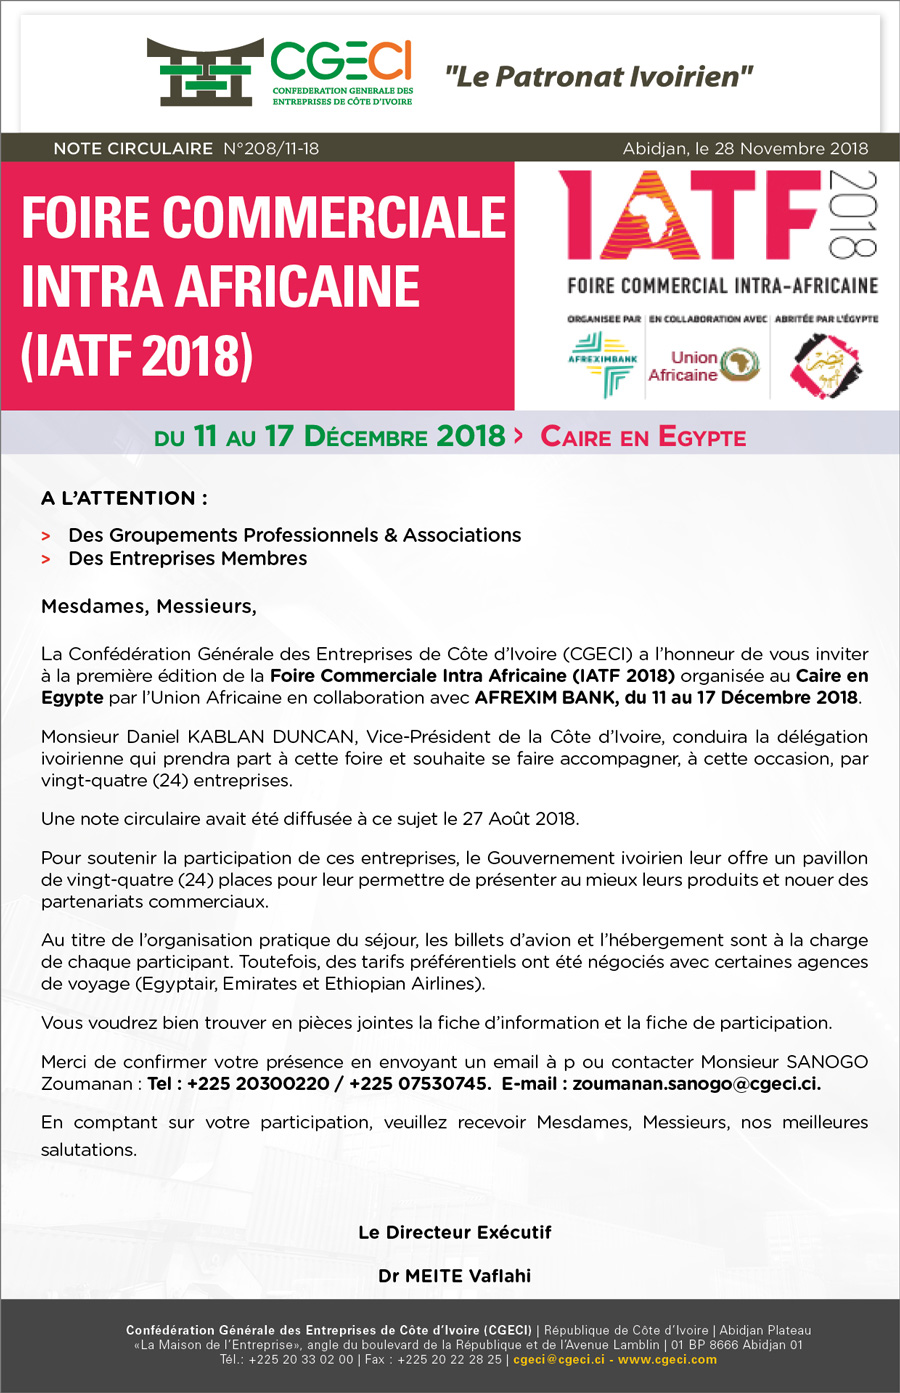 Foire Commerciale Intra Africaine (IATF 2018)